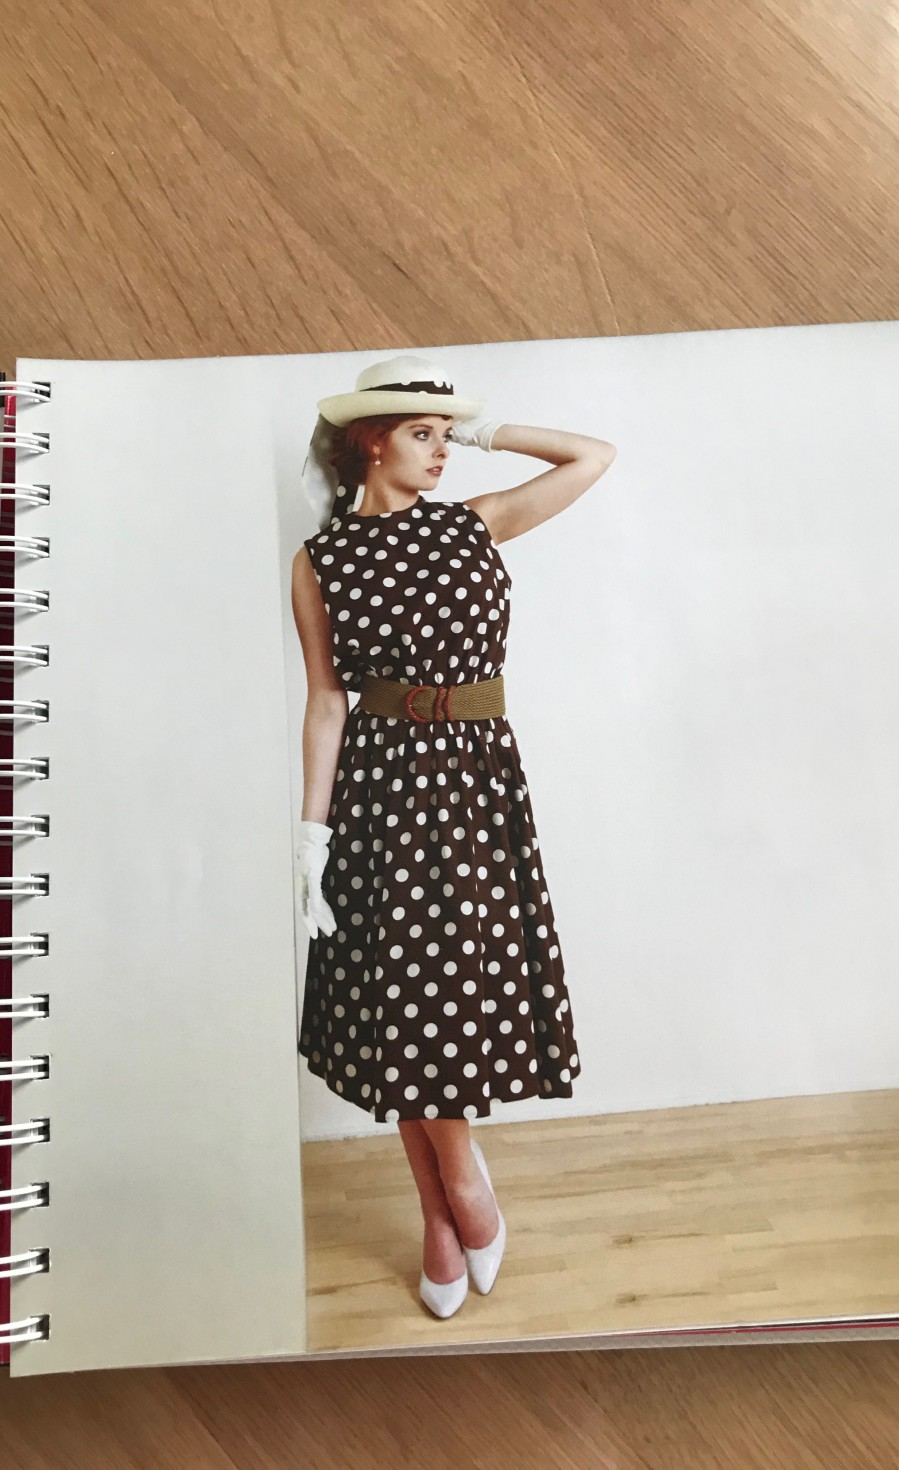 "burda style Nutzerkreation designingrid Meine Interpretation des ""Pretty Woman "" Kleides"